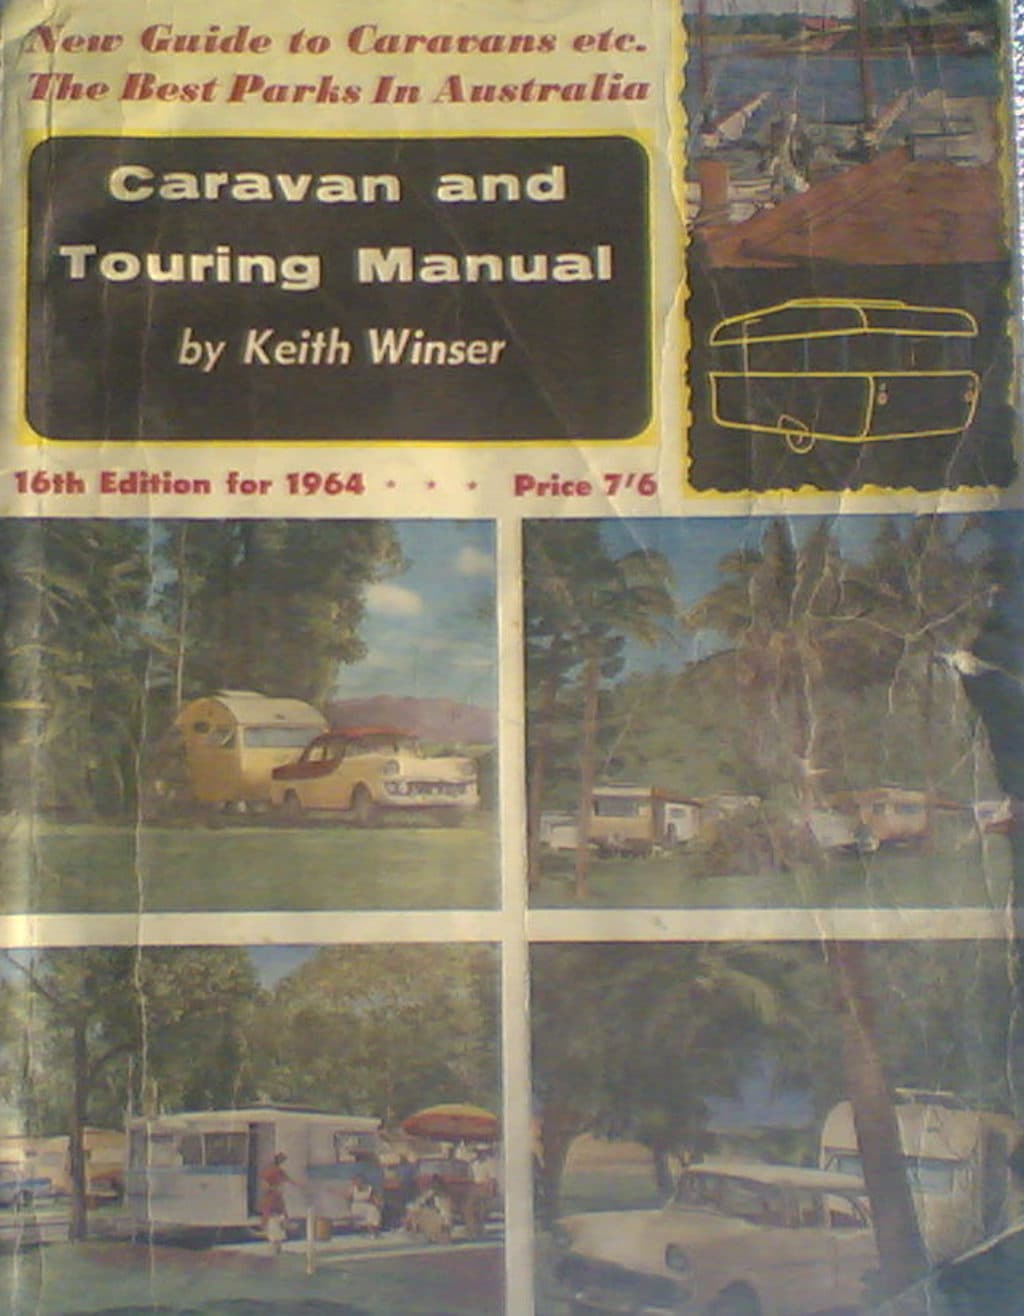 Book 9 Keith Winser's Caravans and Touring 1957